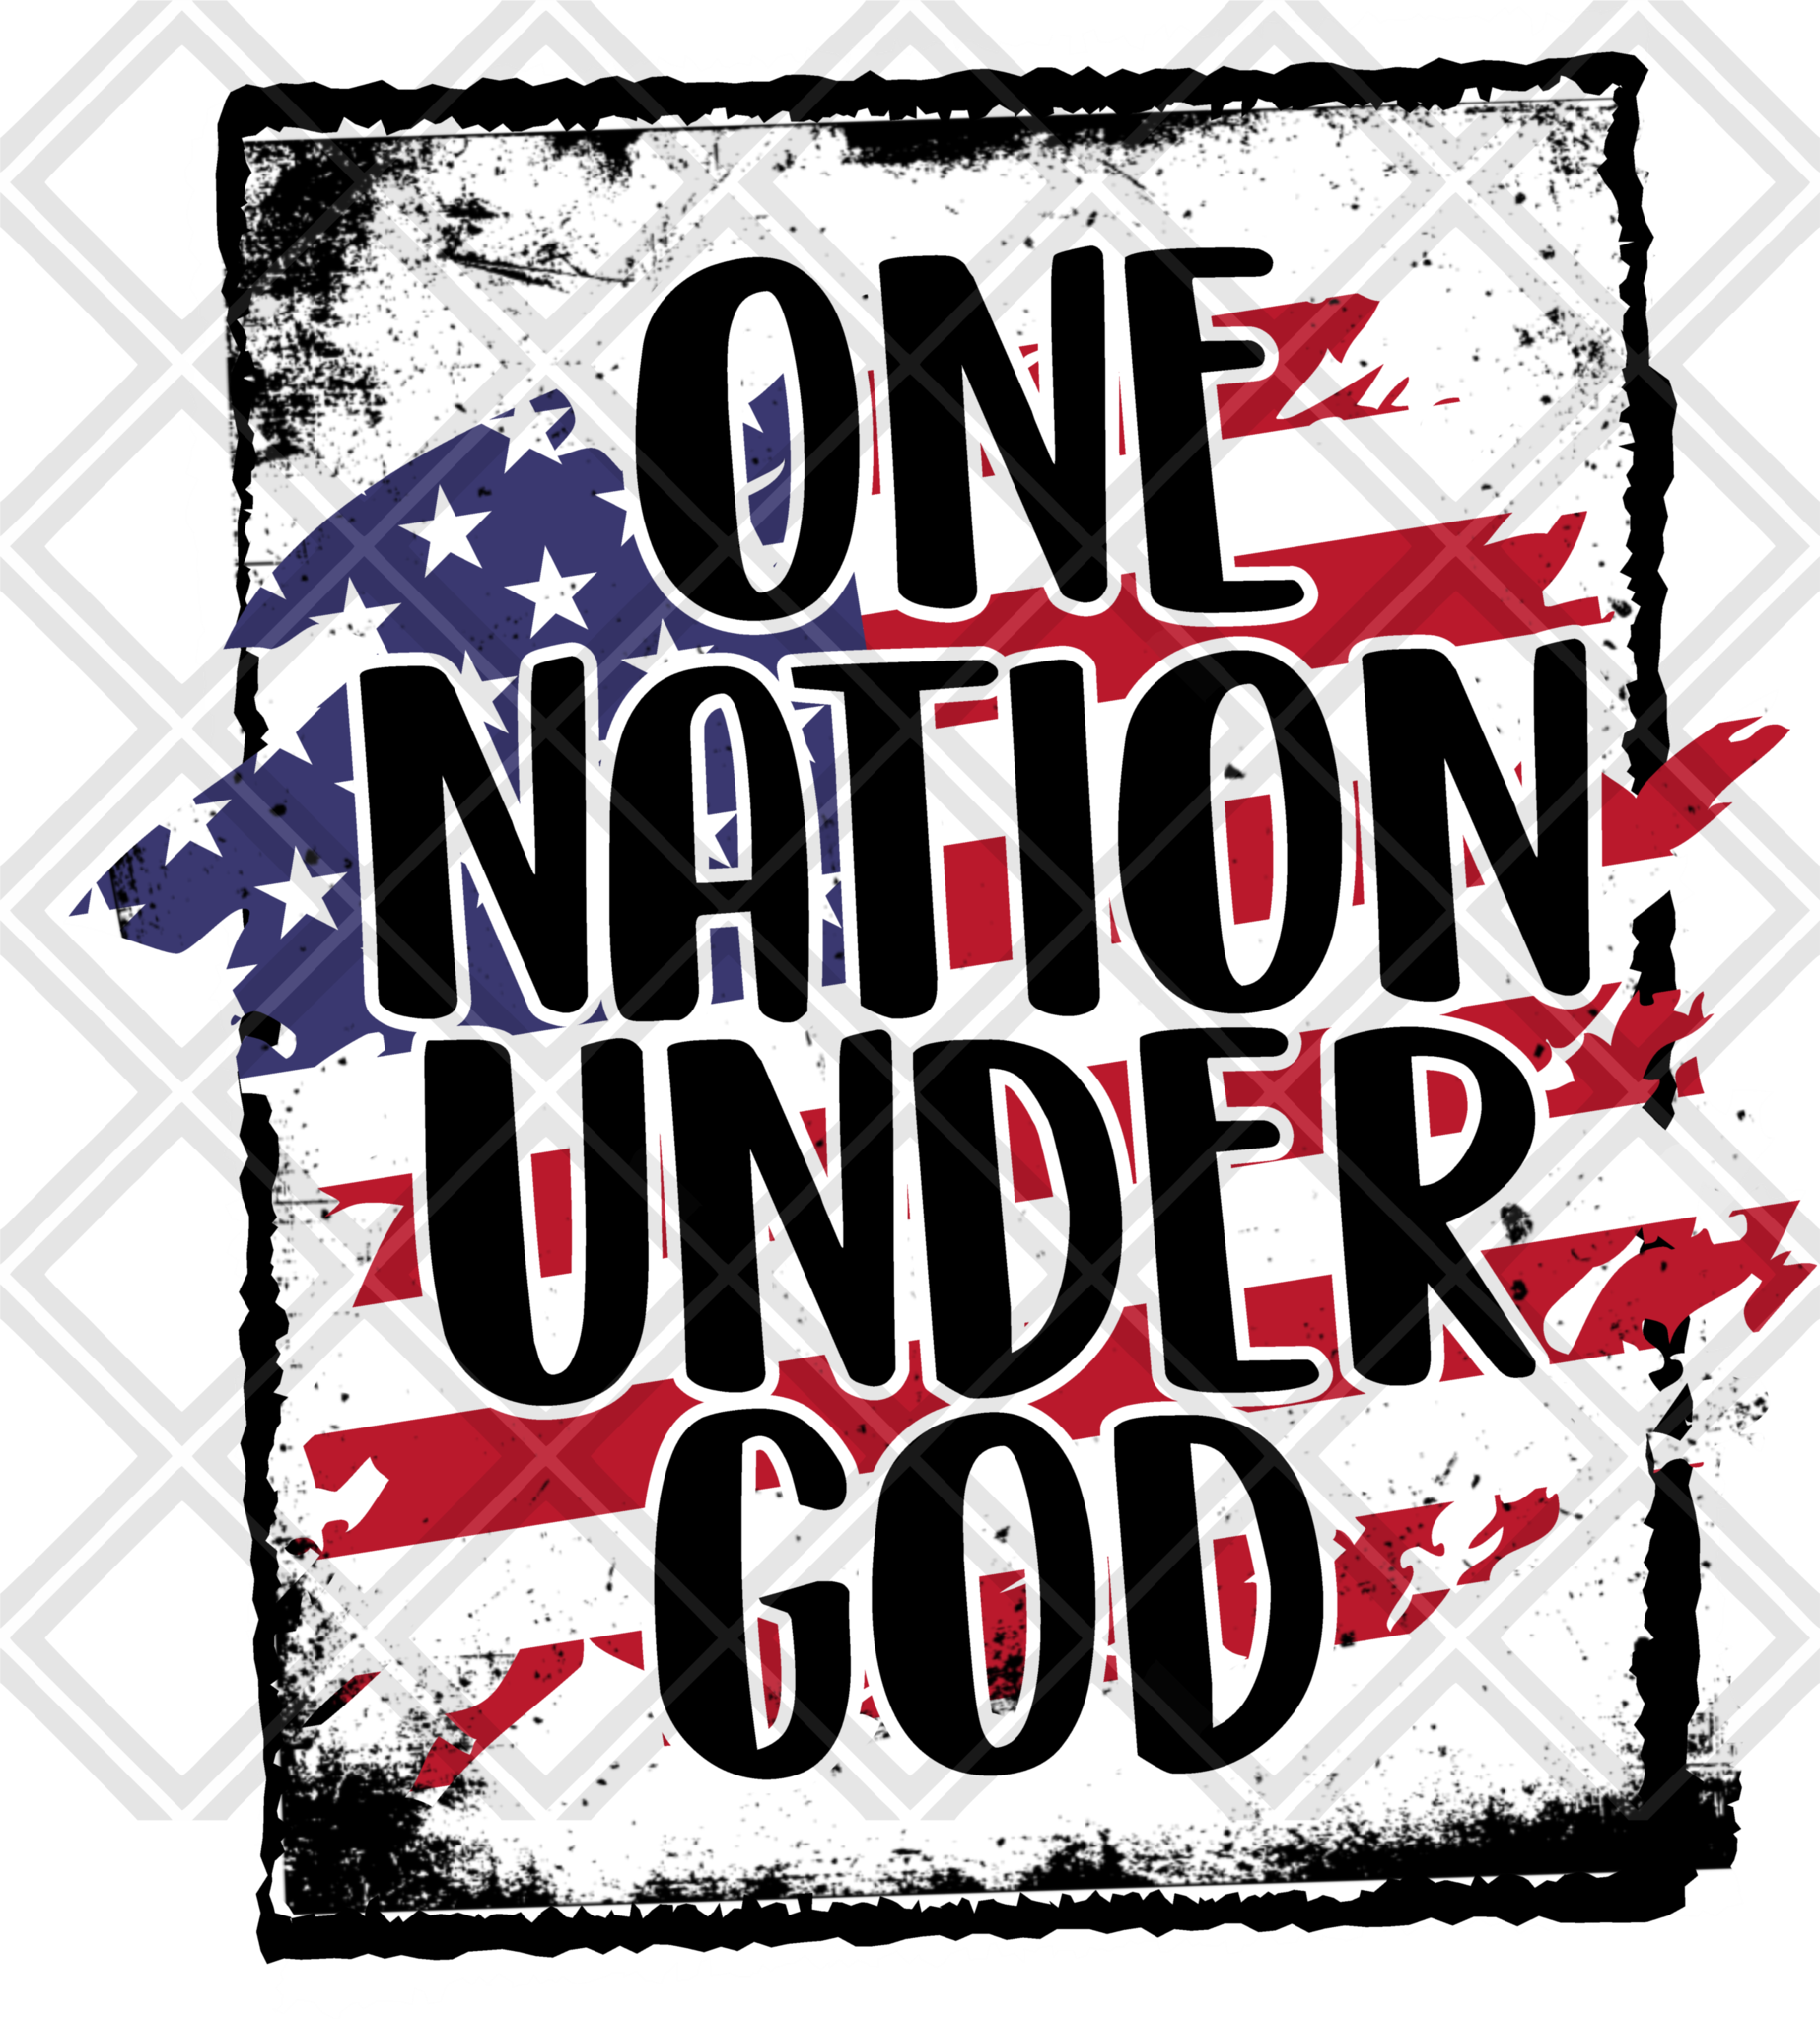 One Nation Under God Htv Transfer, Sublimation Transfer.